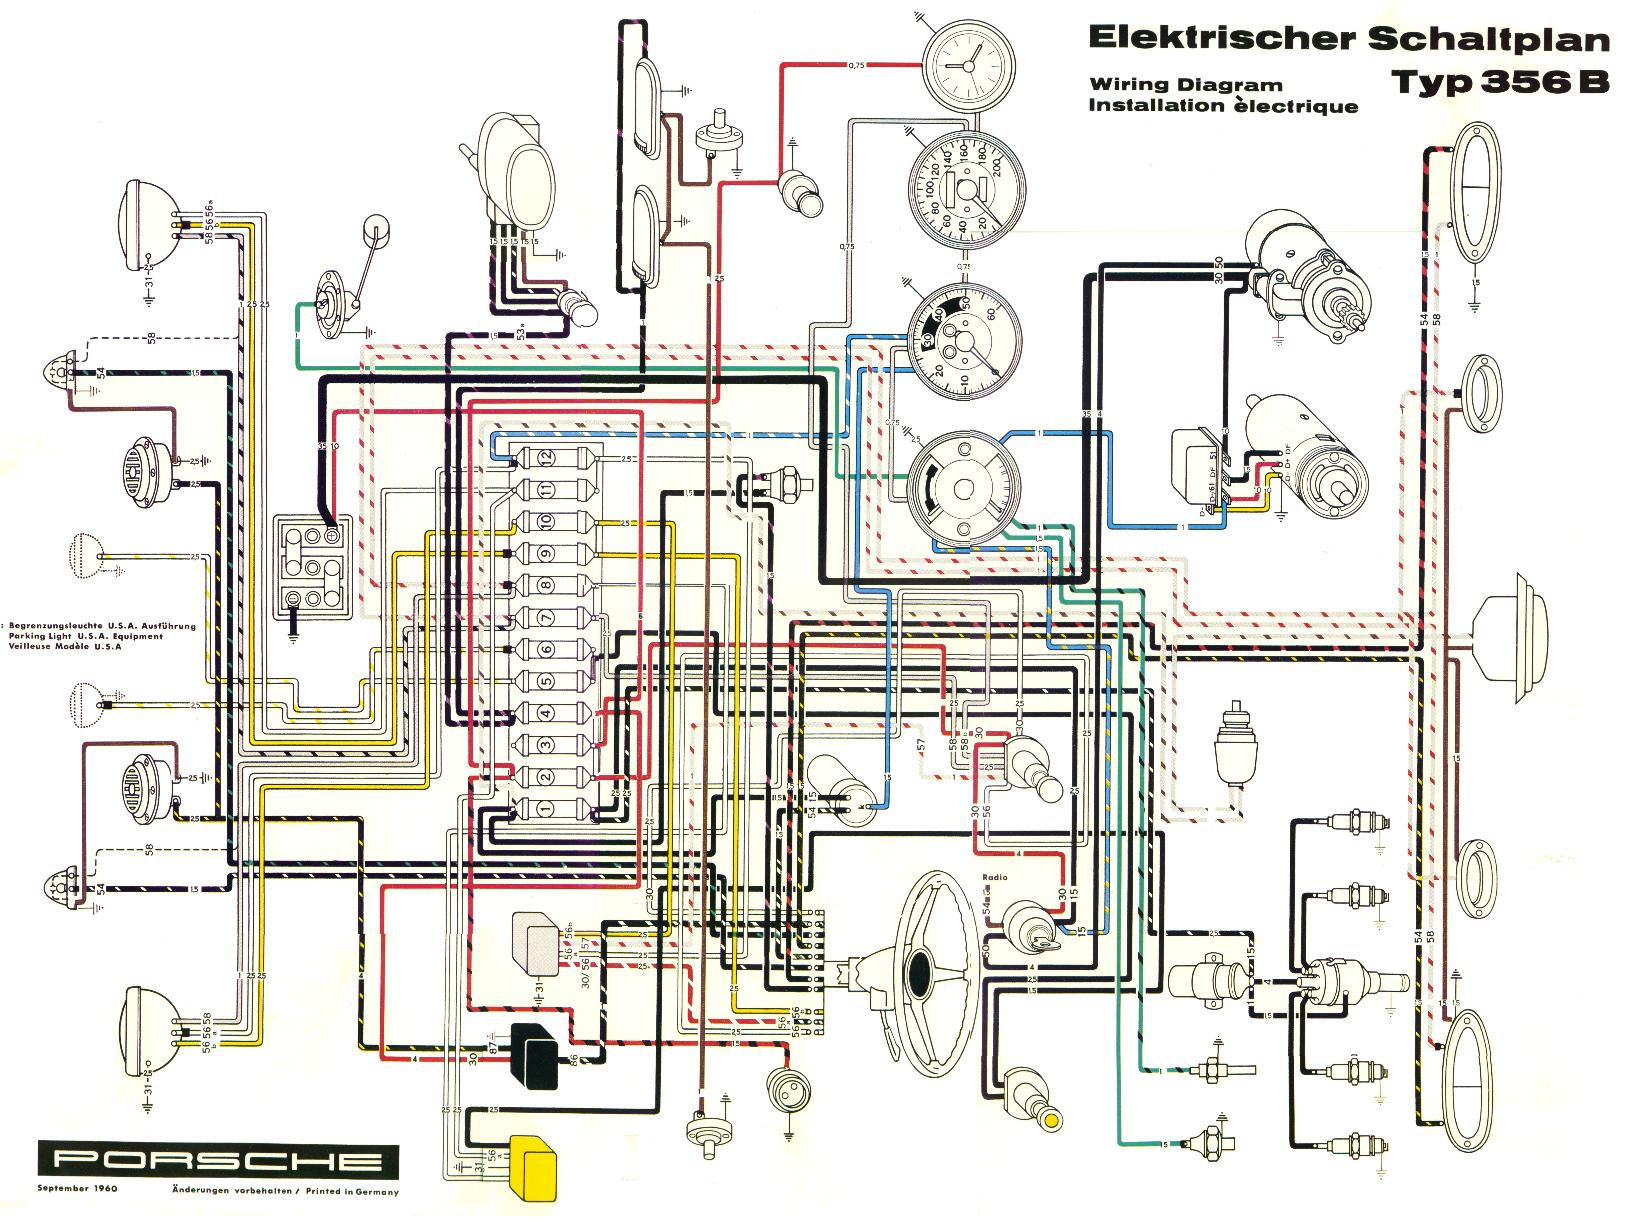 Porsche 964 Engine Diagram likewise Camaro LT1 Vacuum Line Diagram additionally Porsche 944 DME Wiring likewise Motorhome Luxury Motor Coach furthermore 1979 Datsun Nissan 280ZX. on porsche 944 wiring diagram